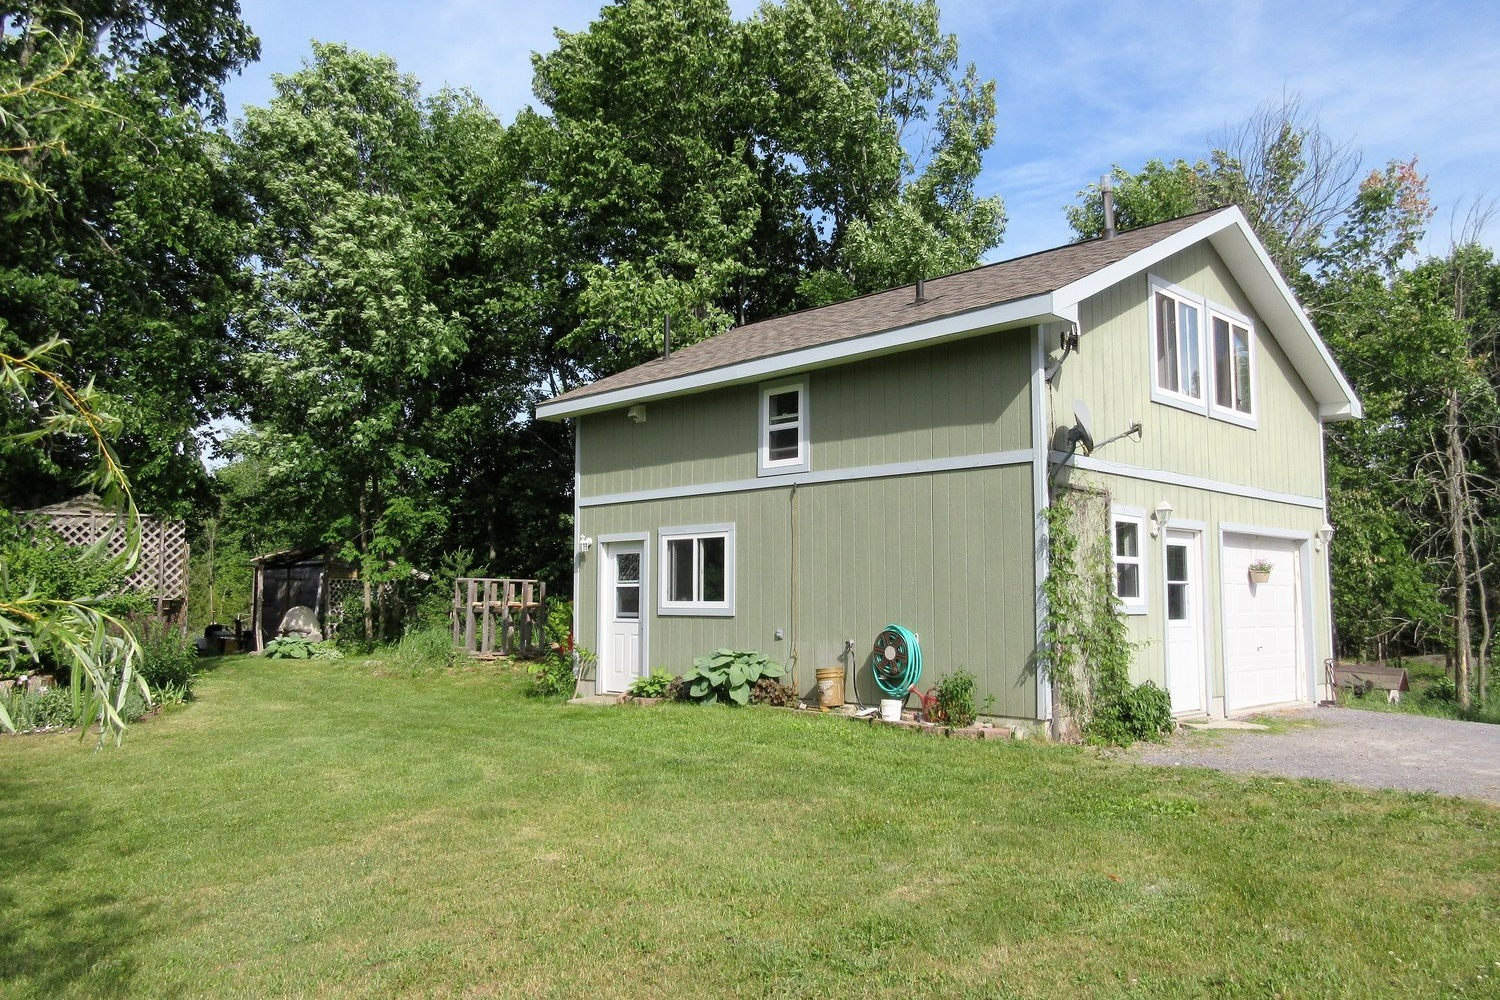 205 Clareview Road - SOLD -